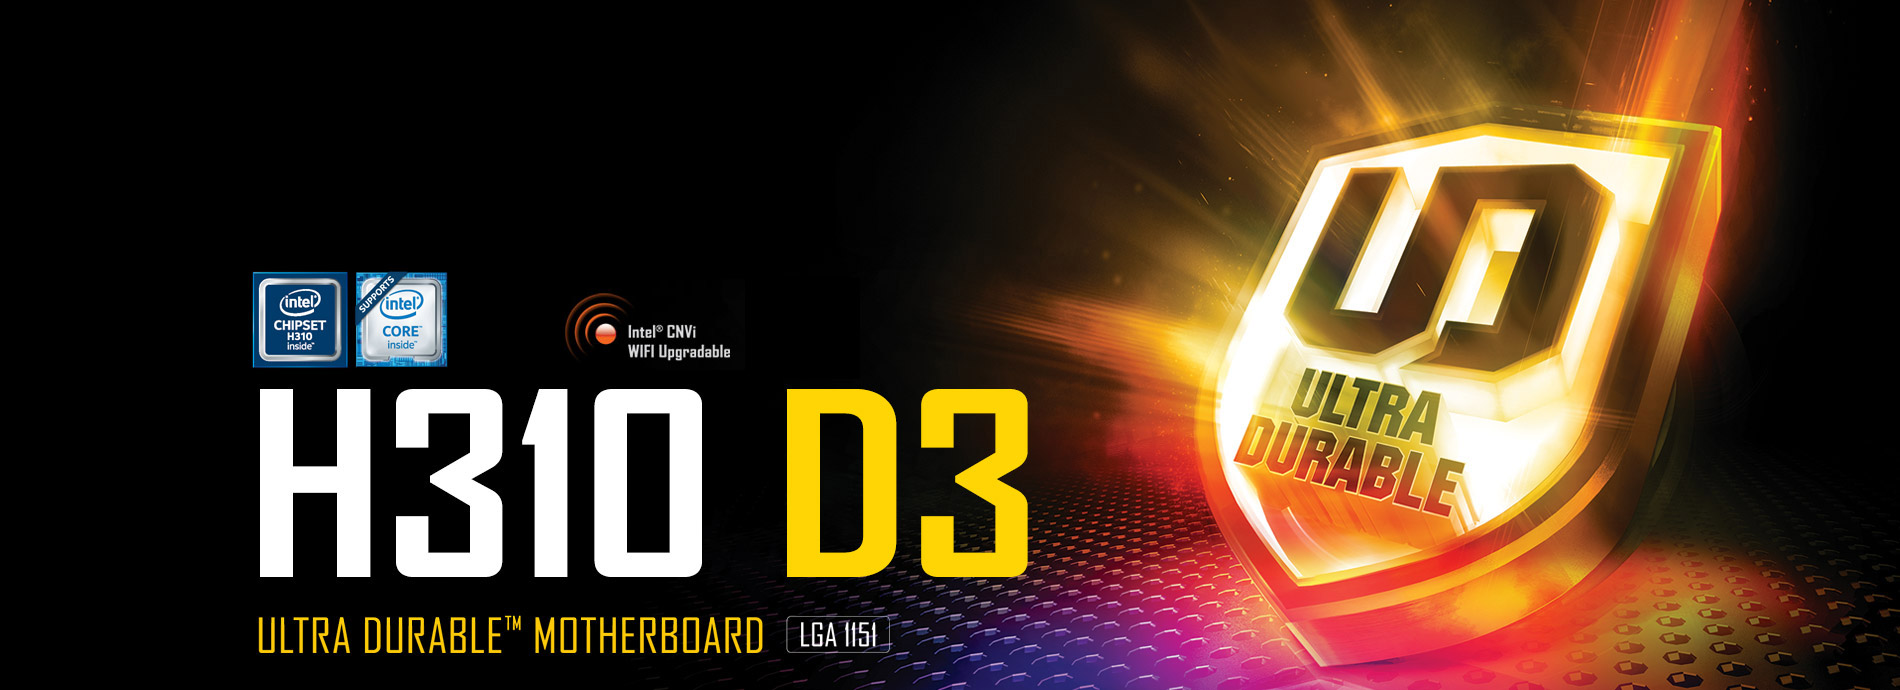 H310 D3 (rev  1 0) | Motherboard - GIGABYTE Global